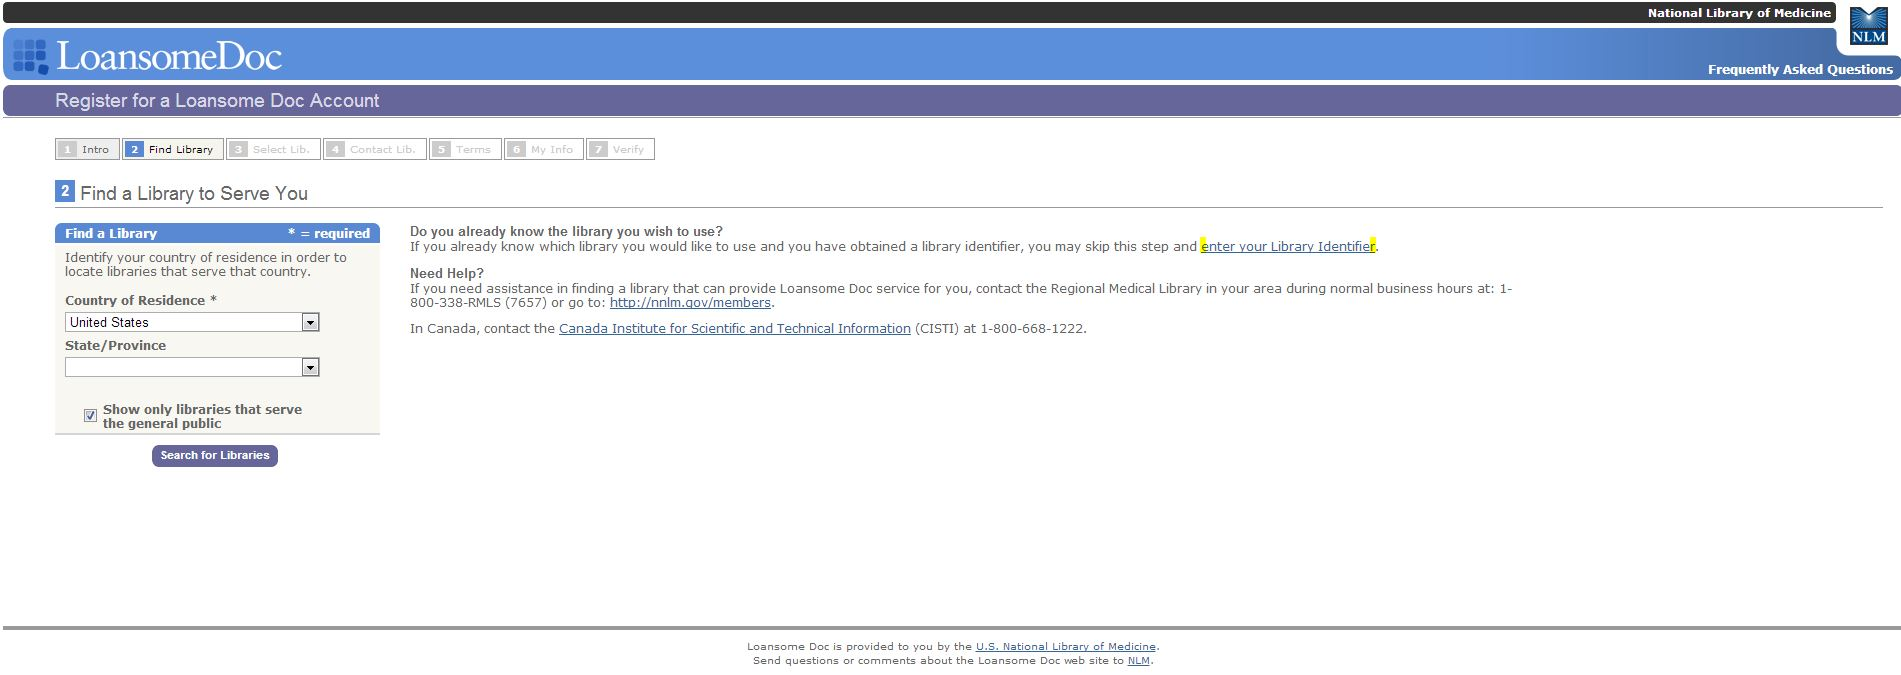 Image of LoansomeDoc enter your library identifier page.